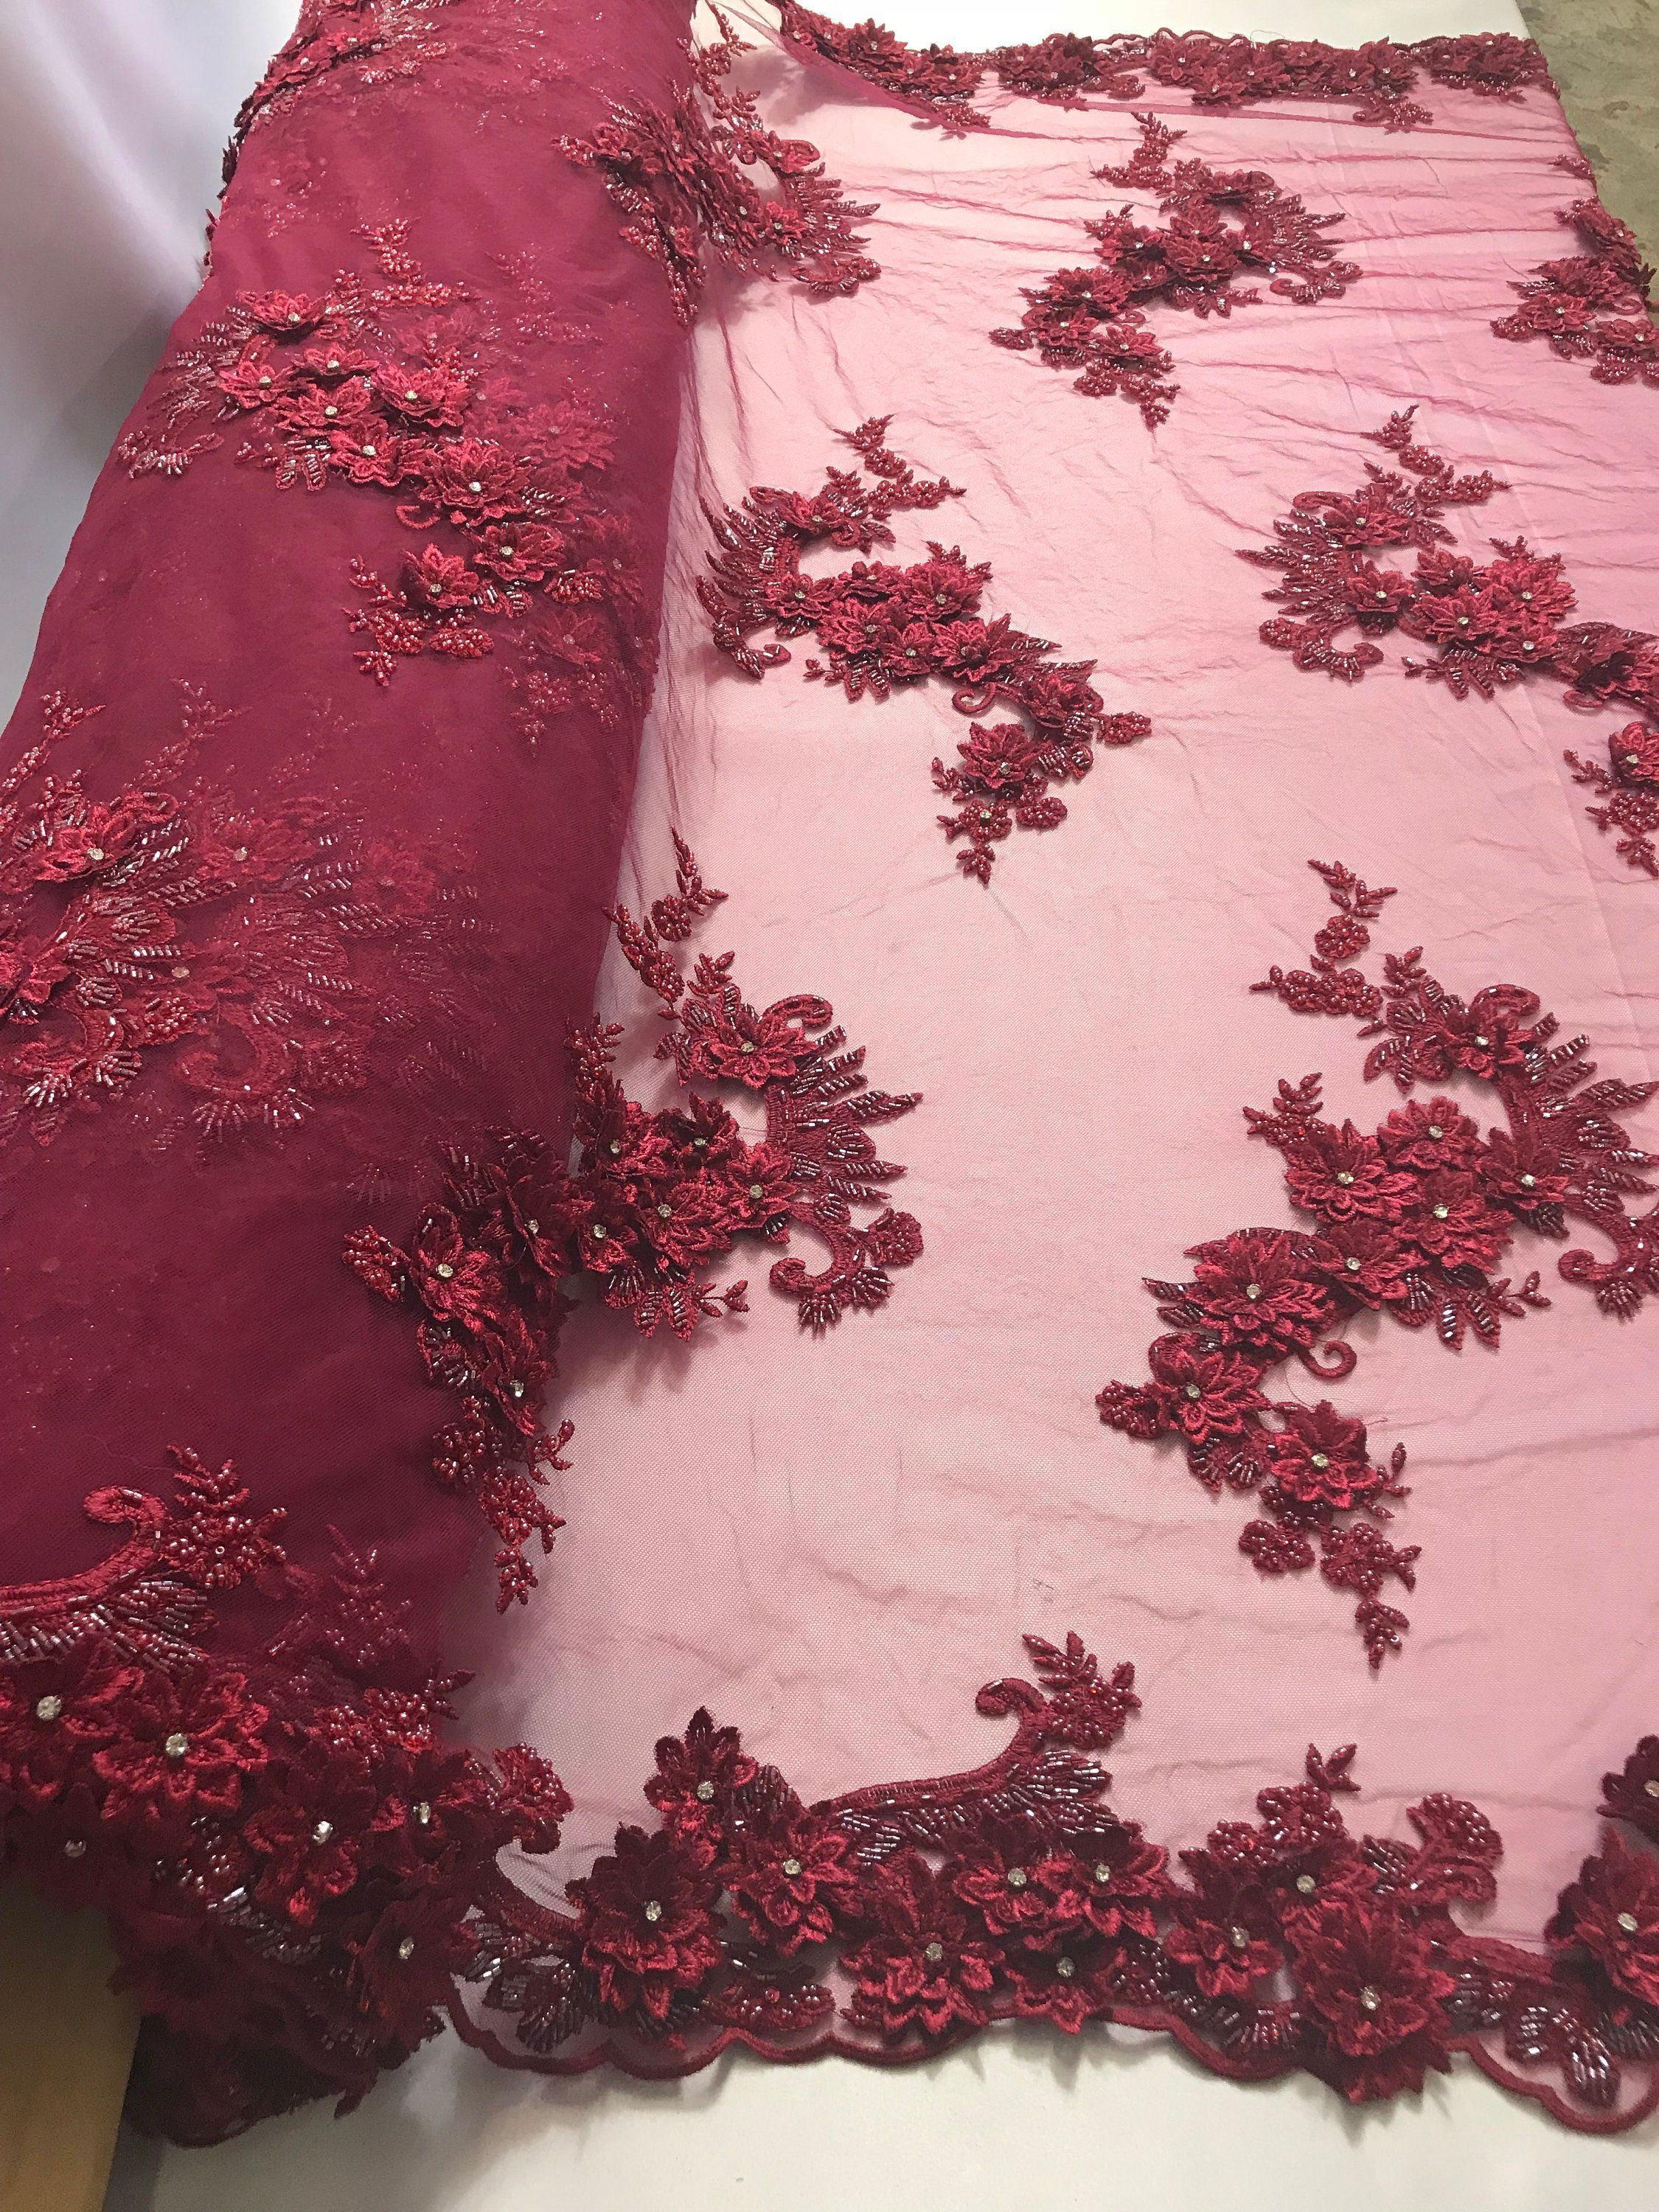 Embroider Beaded On A Mesh For Bridal Veil Flower-Floral Mesh Dress Wedding-Gown-Prom Lace Fabric By The Yard Burgundy Beaded Fabric